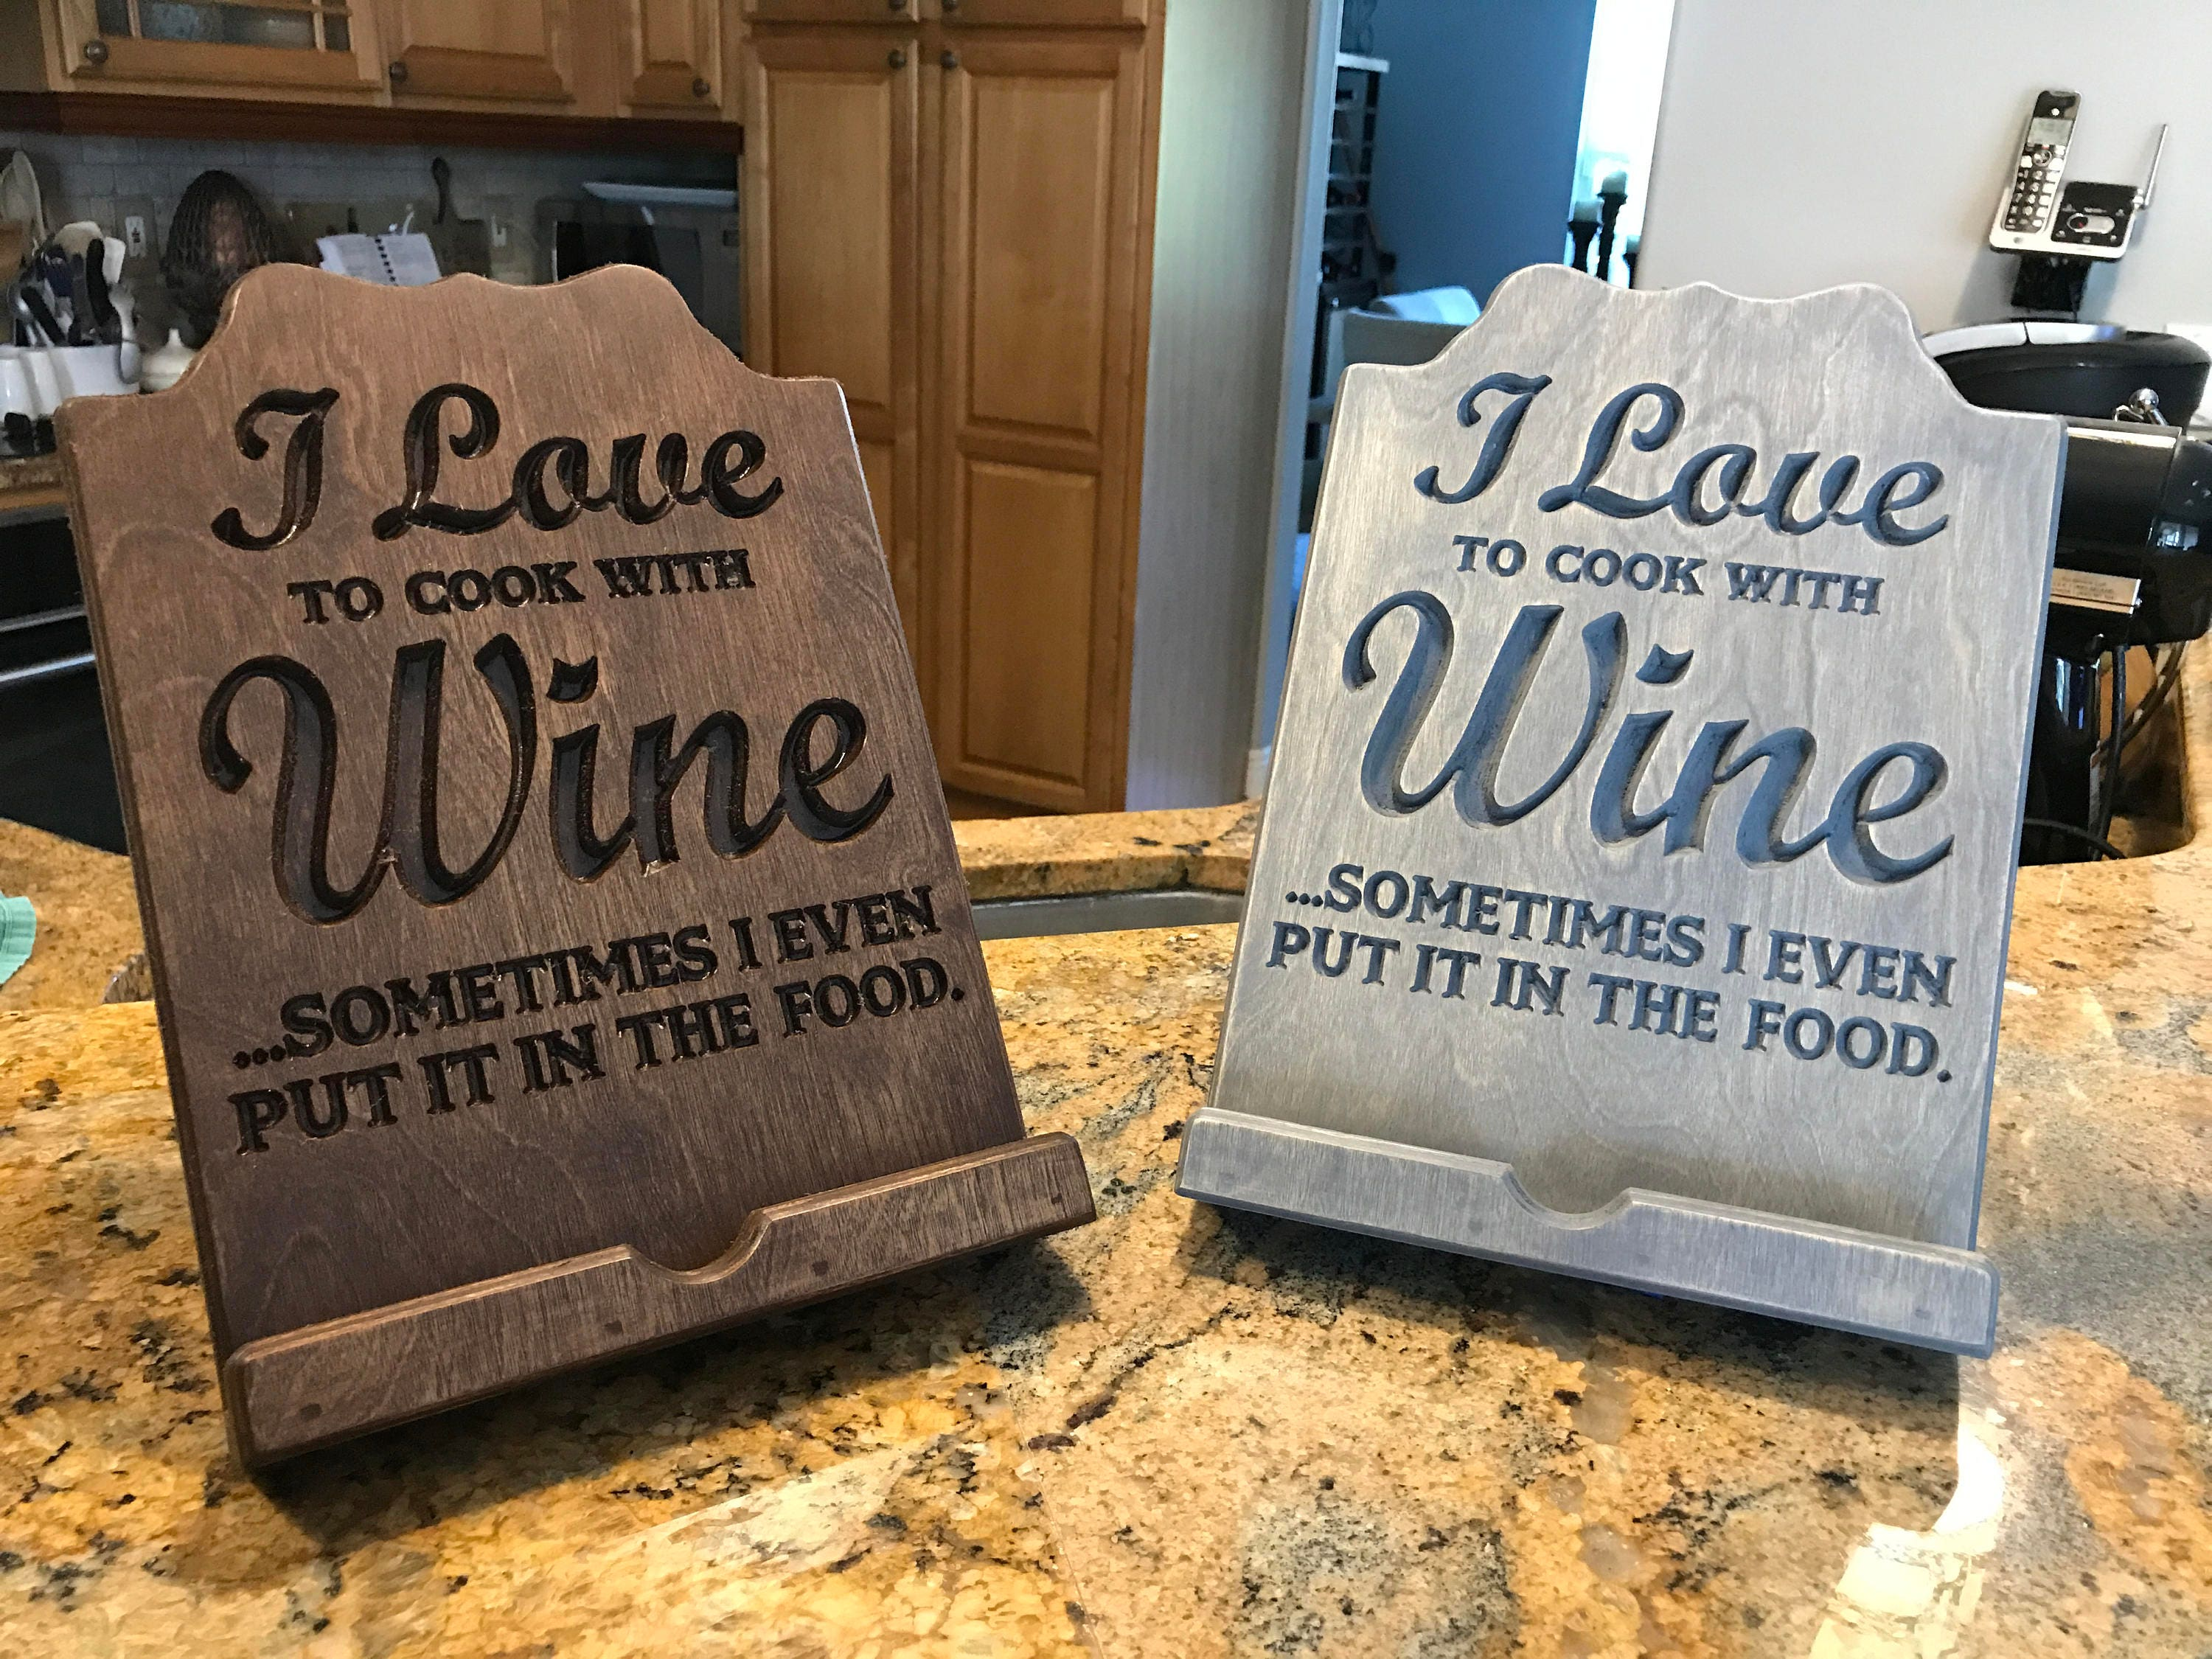 kitchen ipad cook book holder stand with i love to cook with wine